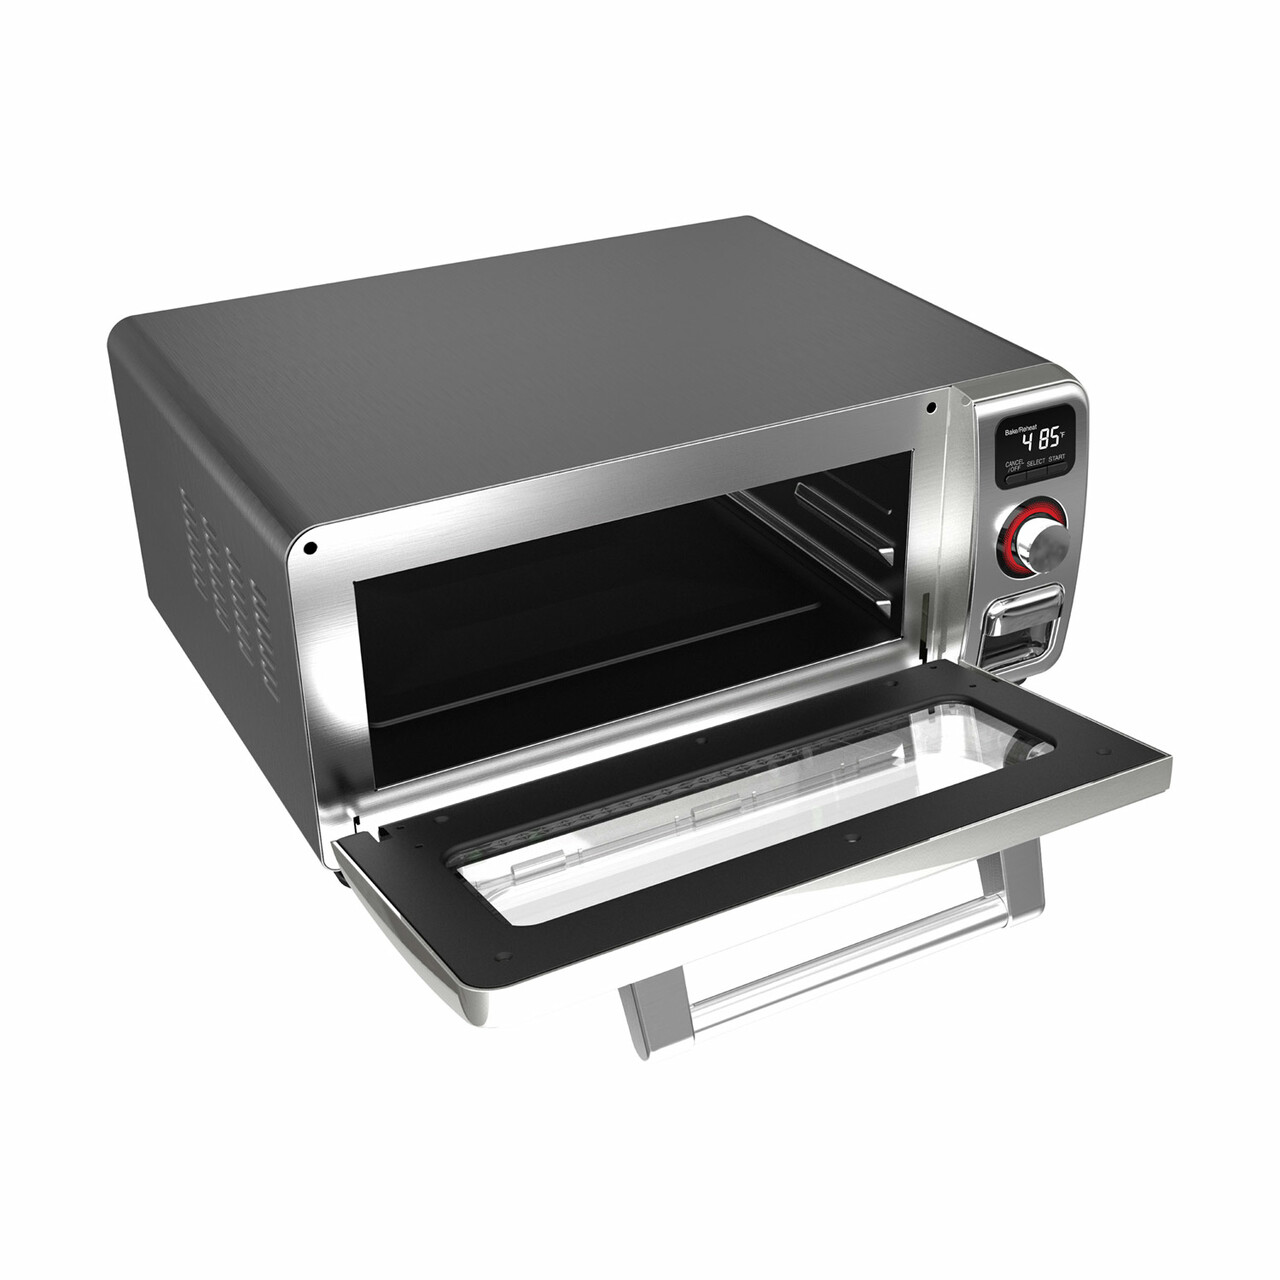 Sharp Superheated Steam Countertop Oven (SSC0586DS) – right angle view with door open